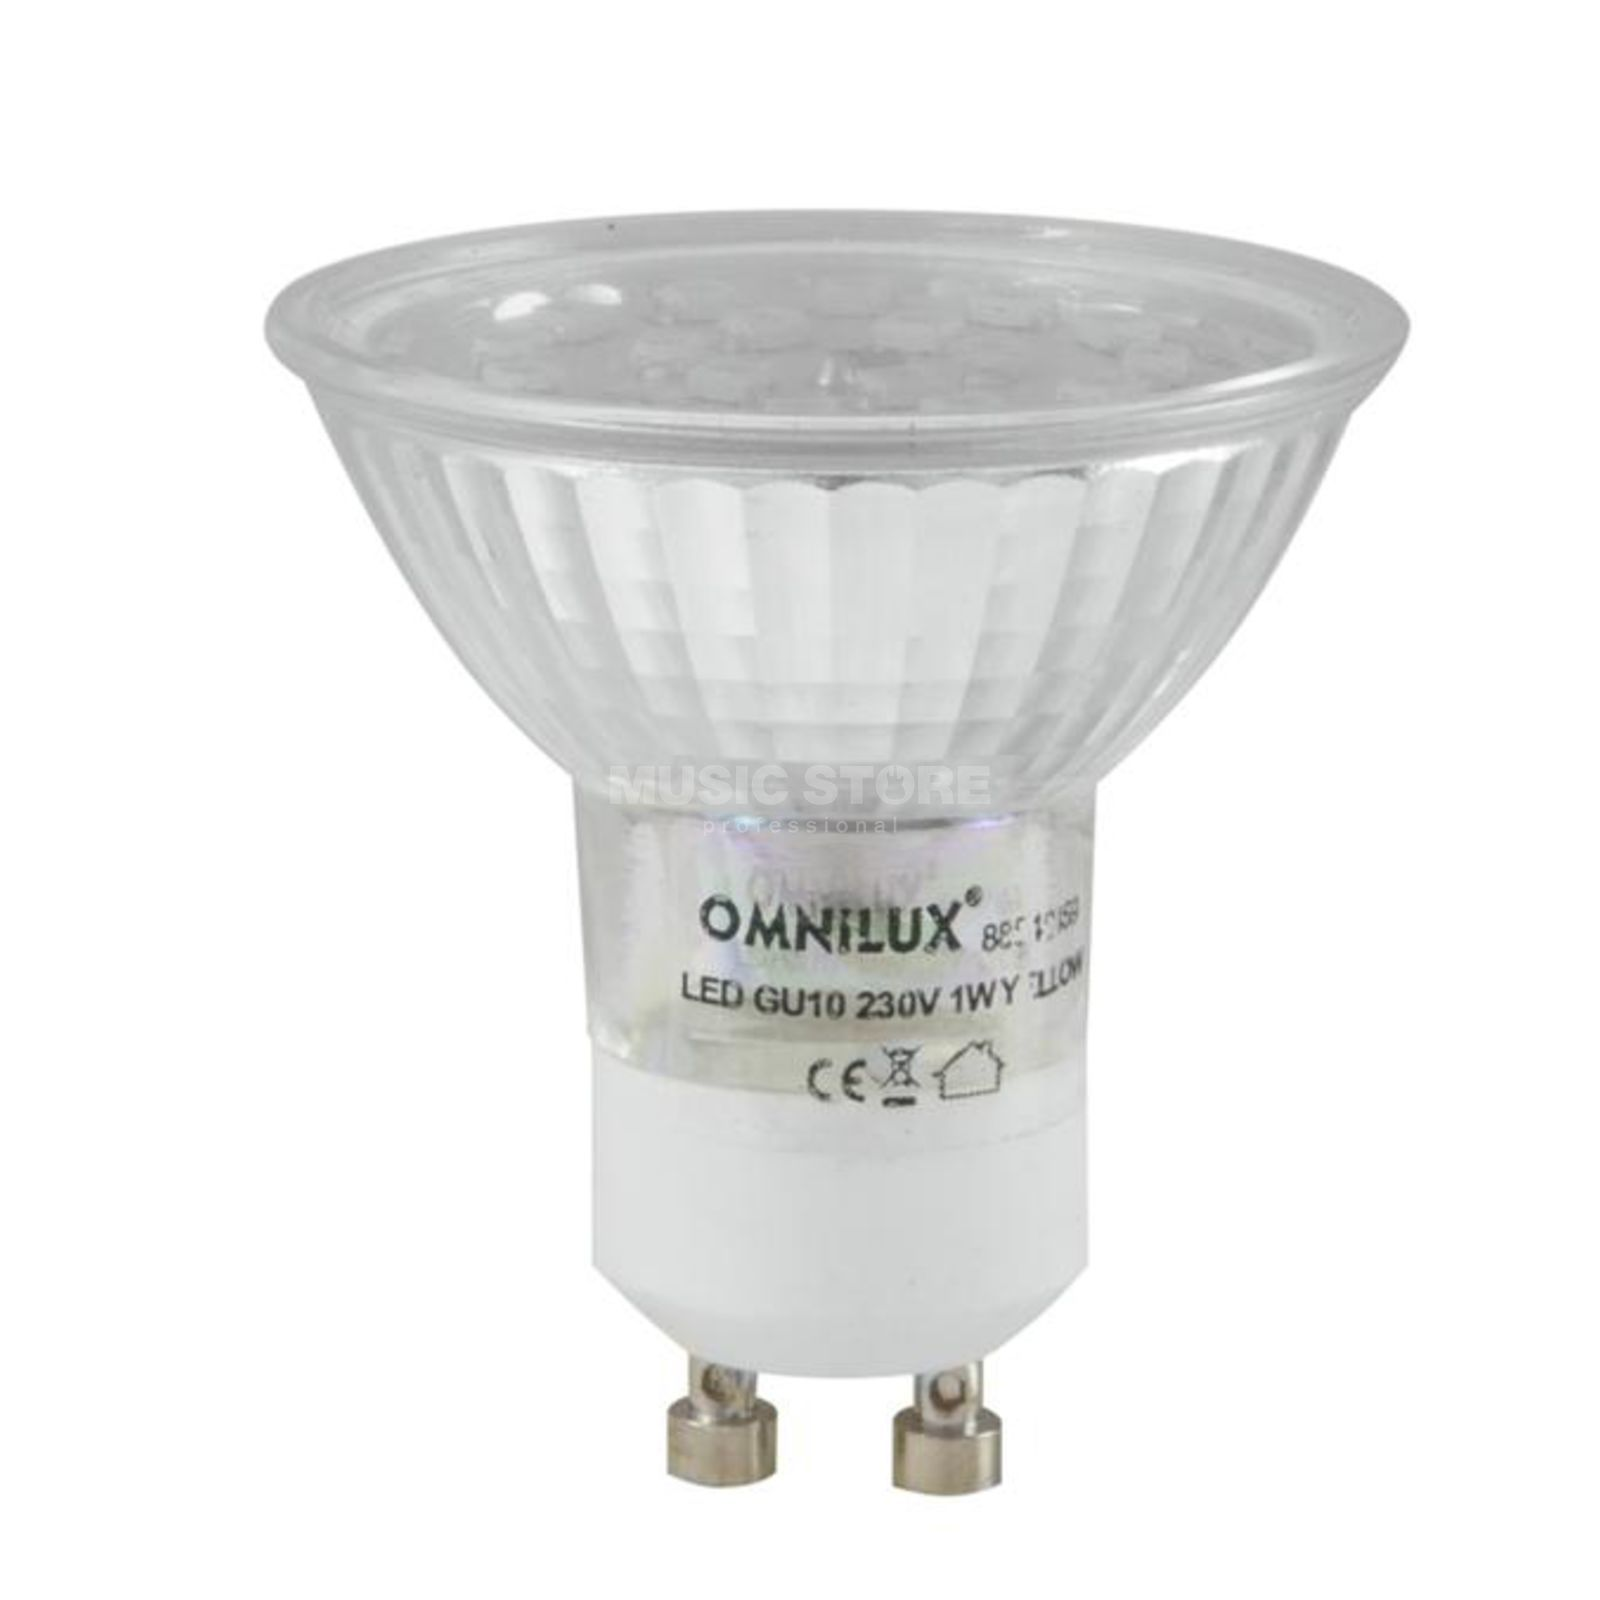 Omnilux GU-10 230V 18x 1W LED Yellow Led Lamp Produktbild